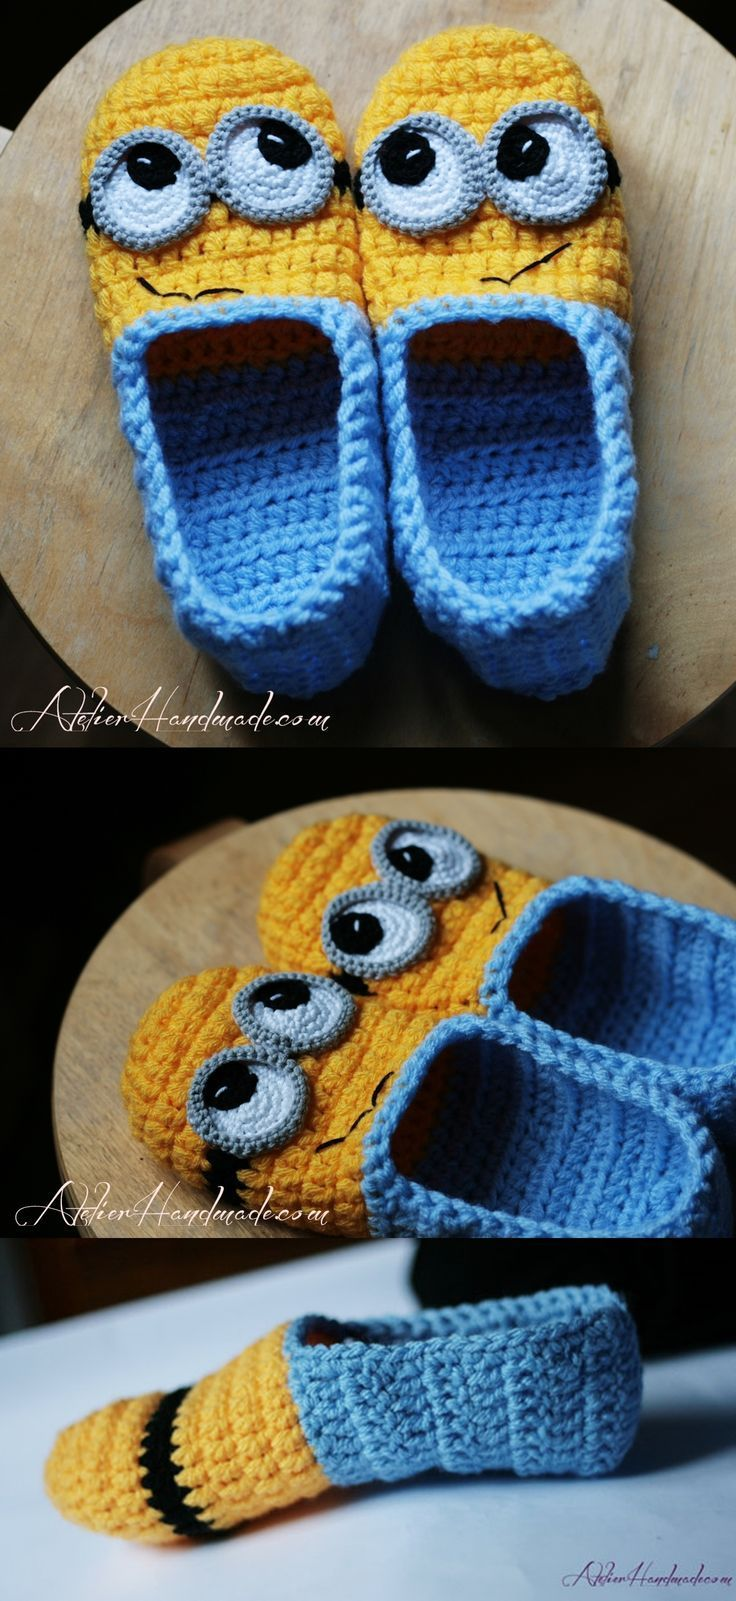 Minion slippers yellow and blue pattern by Atelier Handmade - Sheree Rosenberg #minioncrochetpatterns